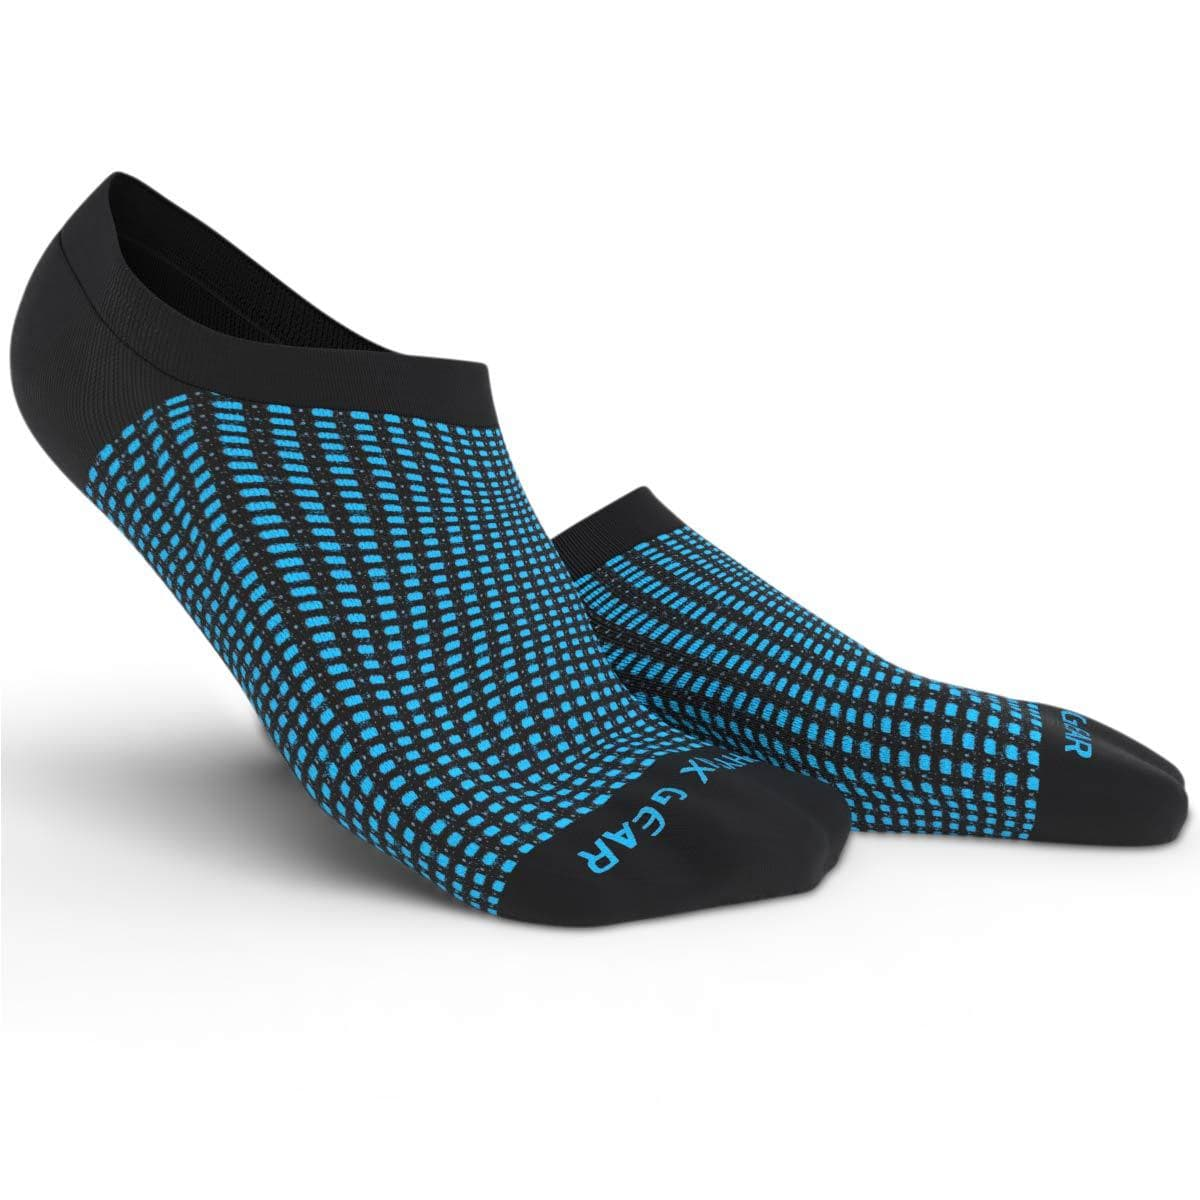 No Show Socks - Black & Blue 3 Pairs (Ankle High)-Physix Gear Sport